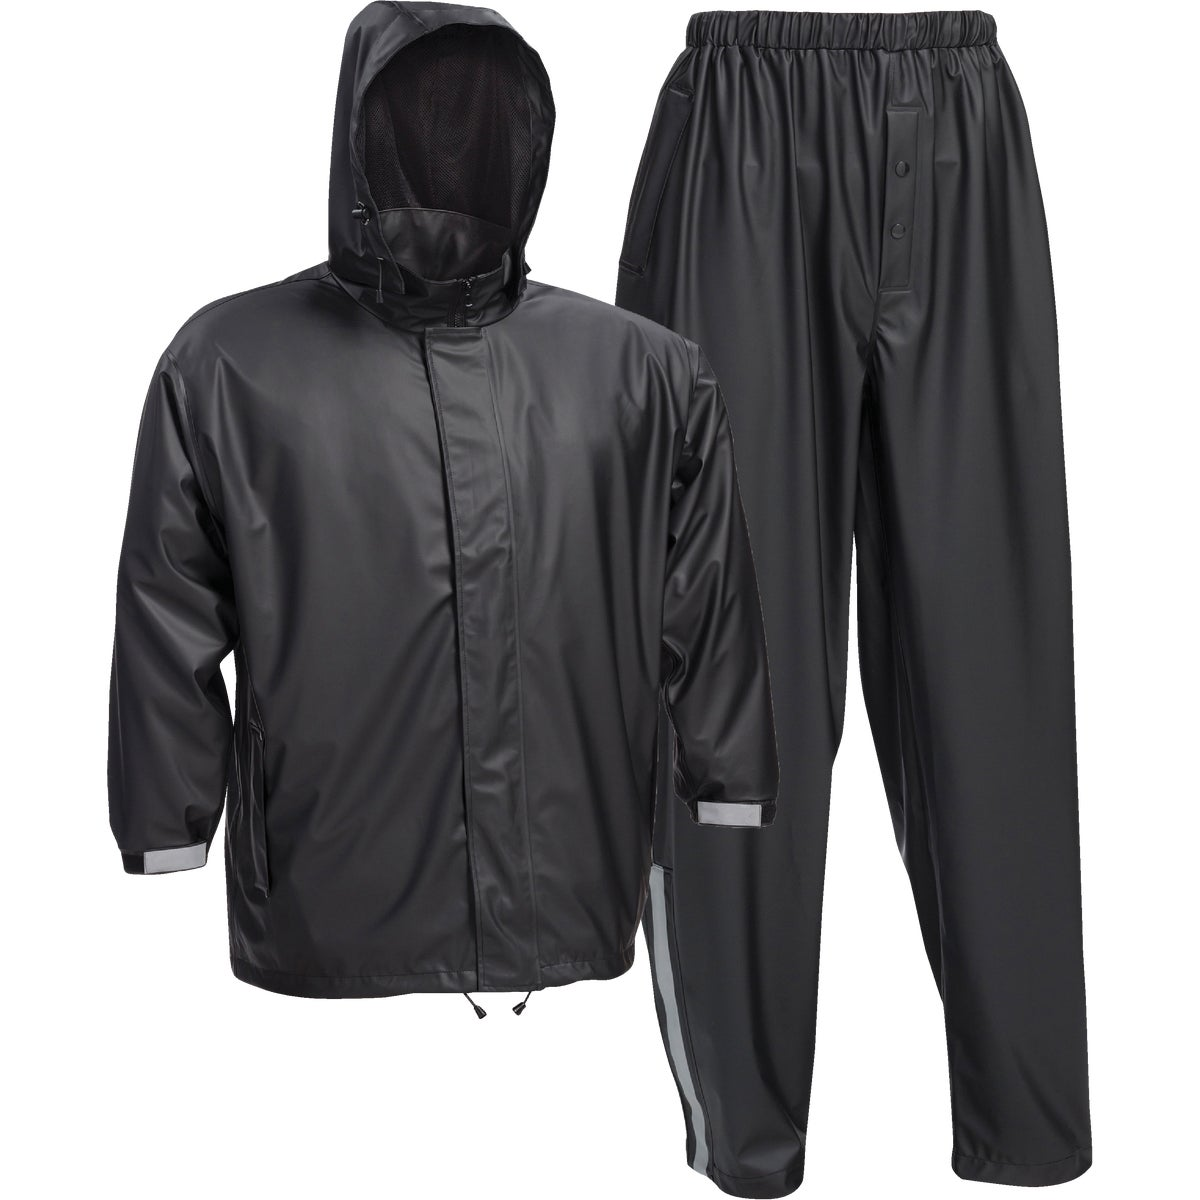 West Chester 3-Piece Black Rain Suit, 44520/2XL